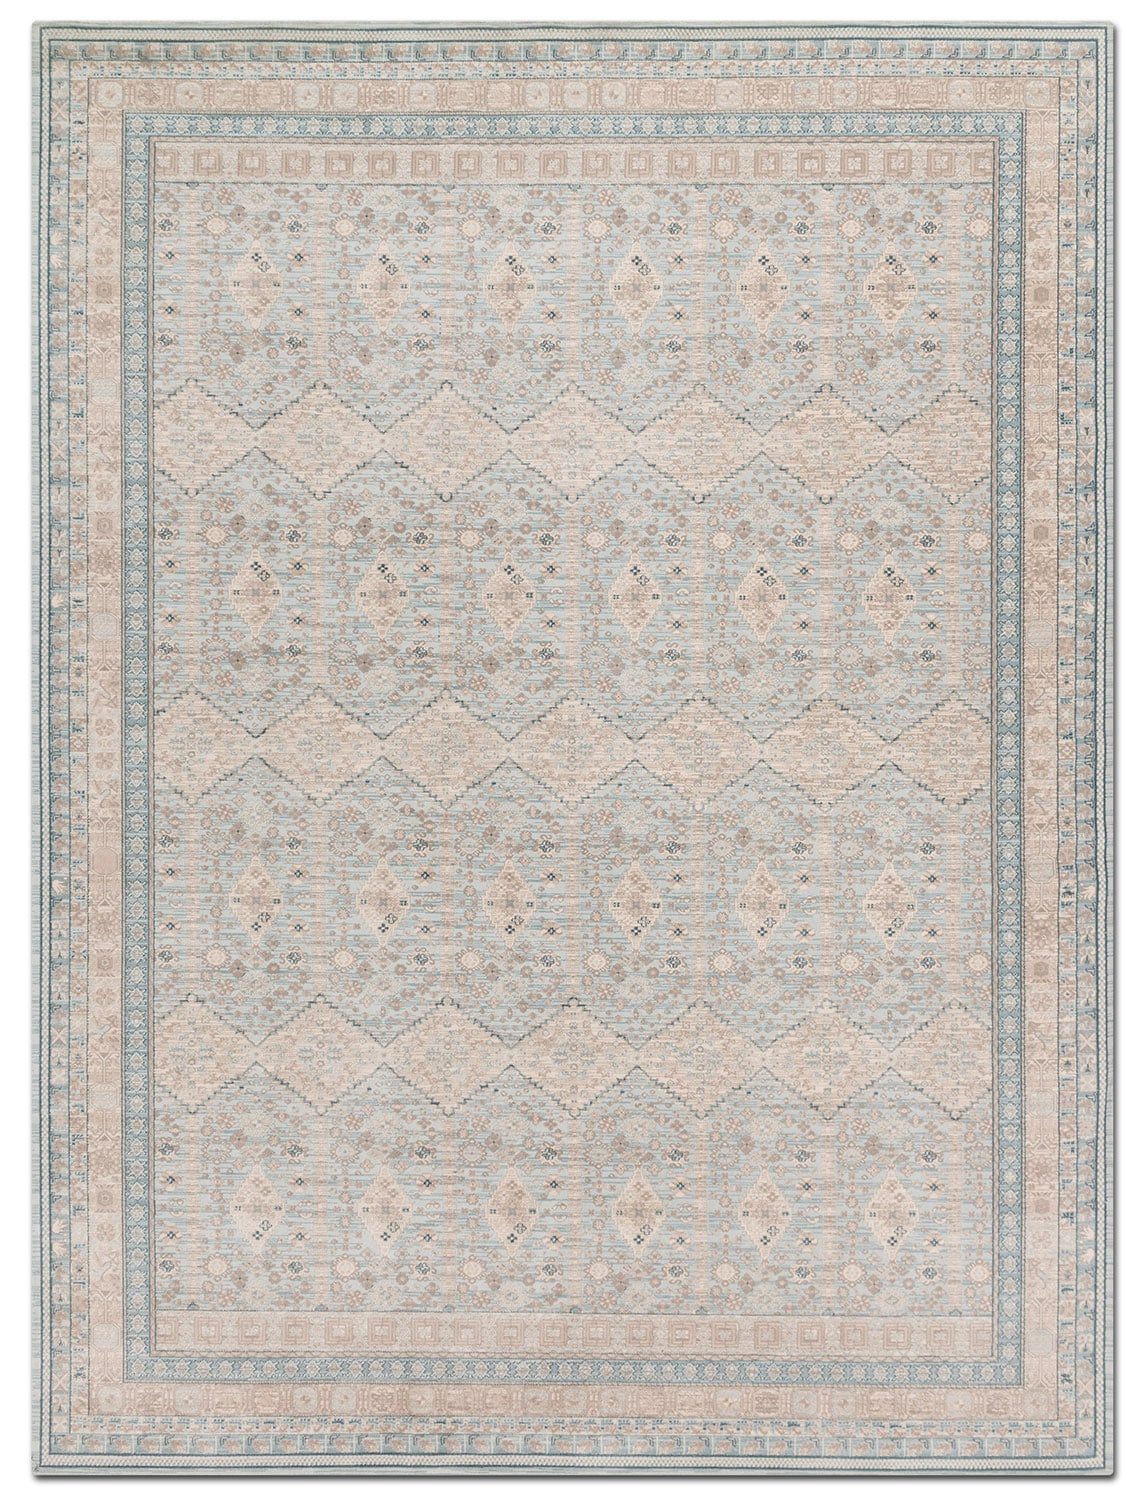 Rugs - Ella Rose 10' x 13' Rug - Mist and Stone